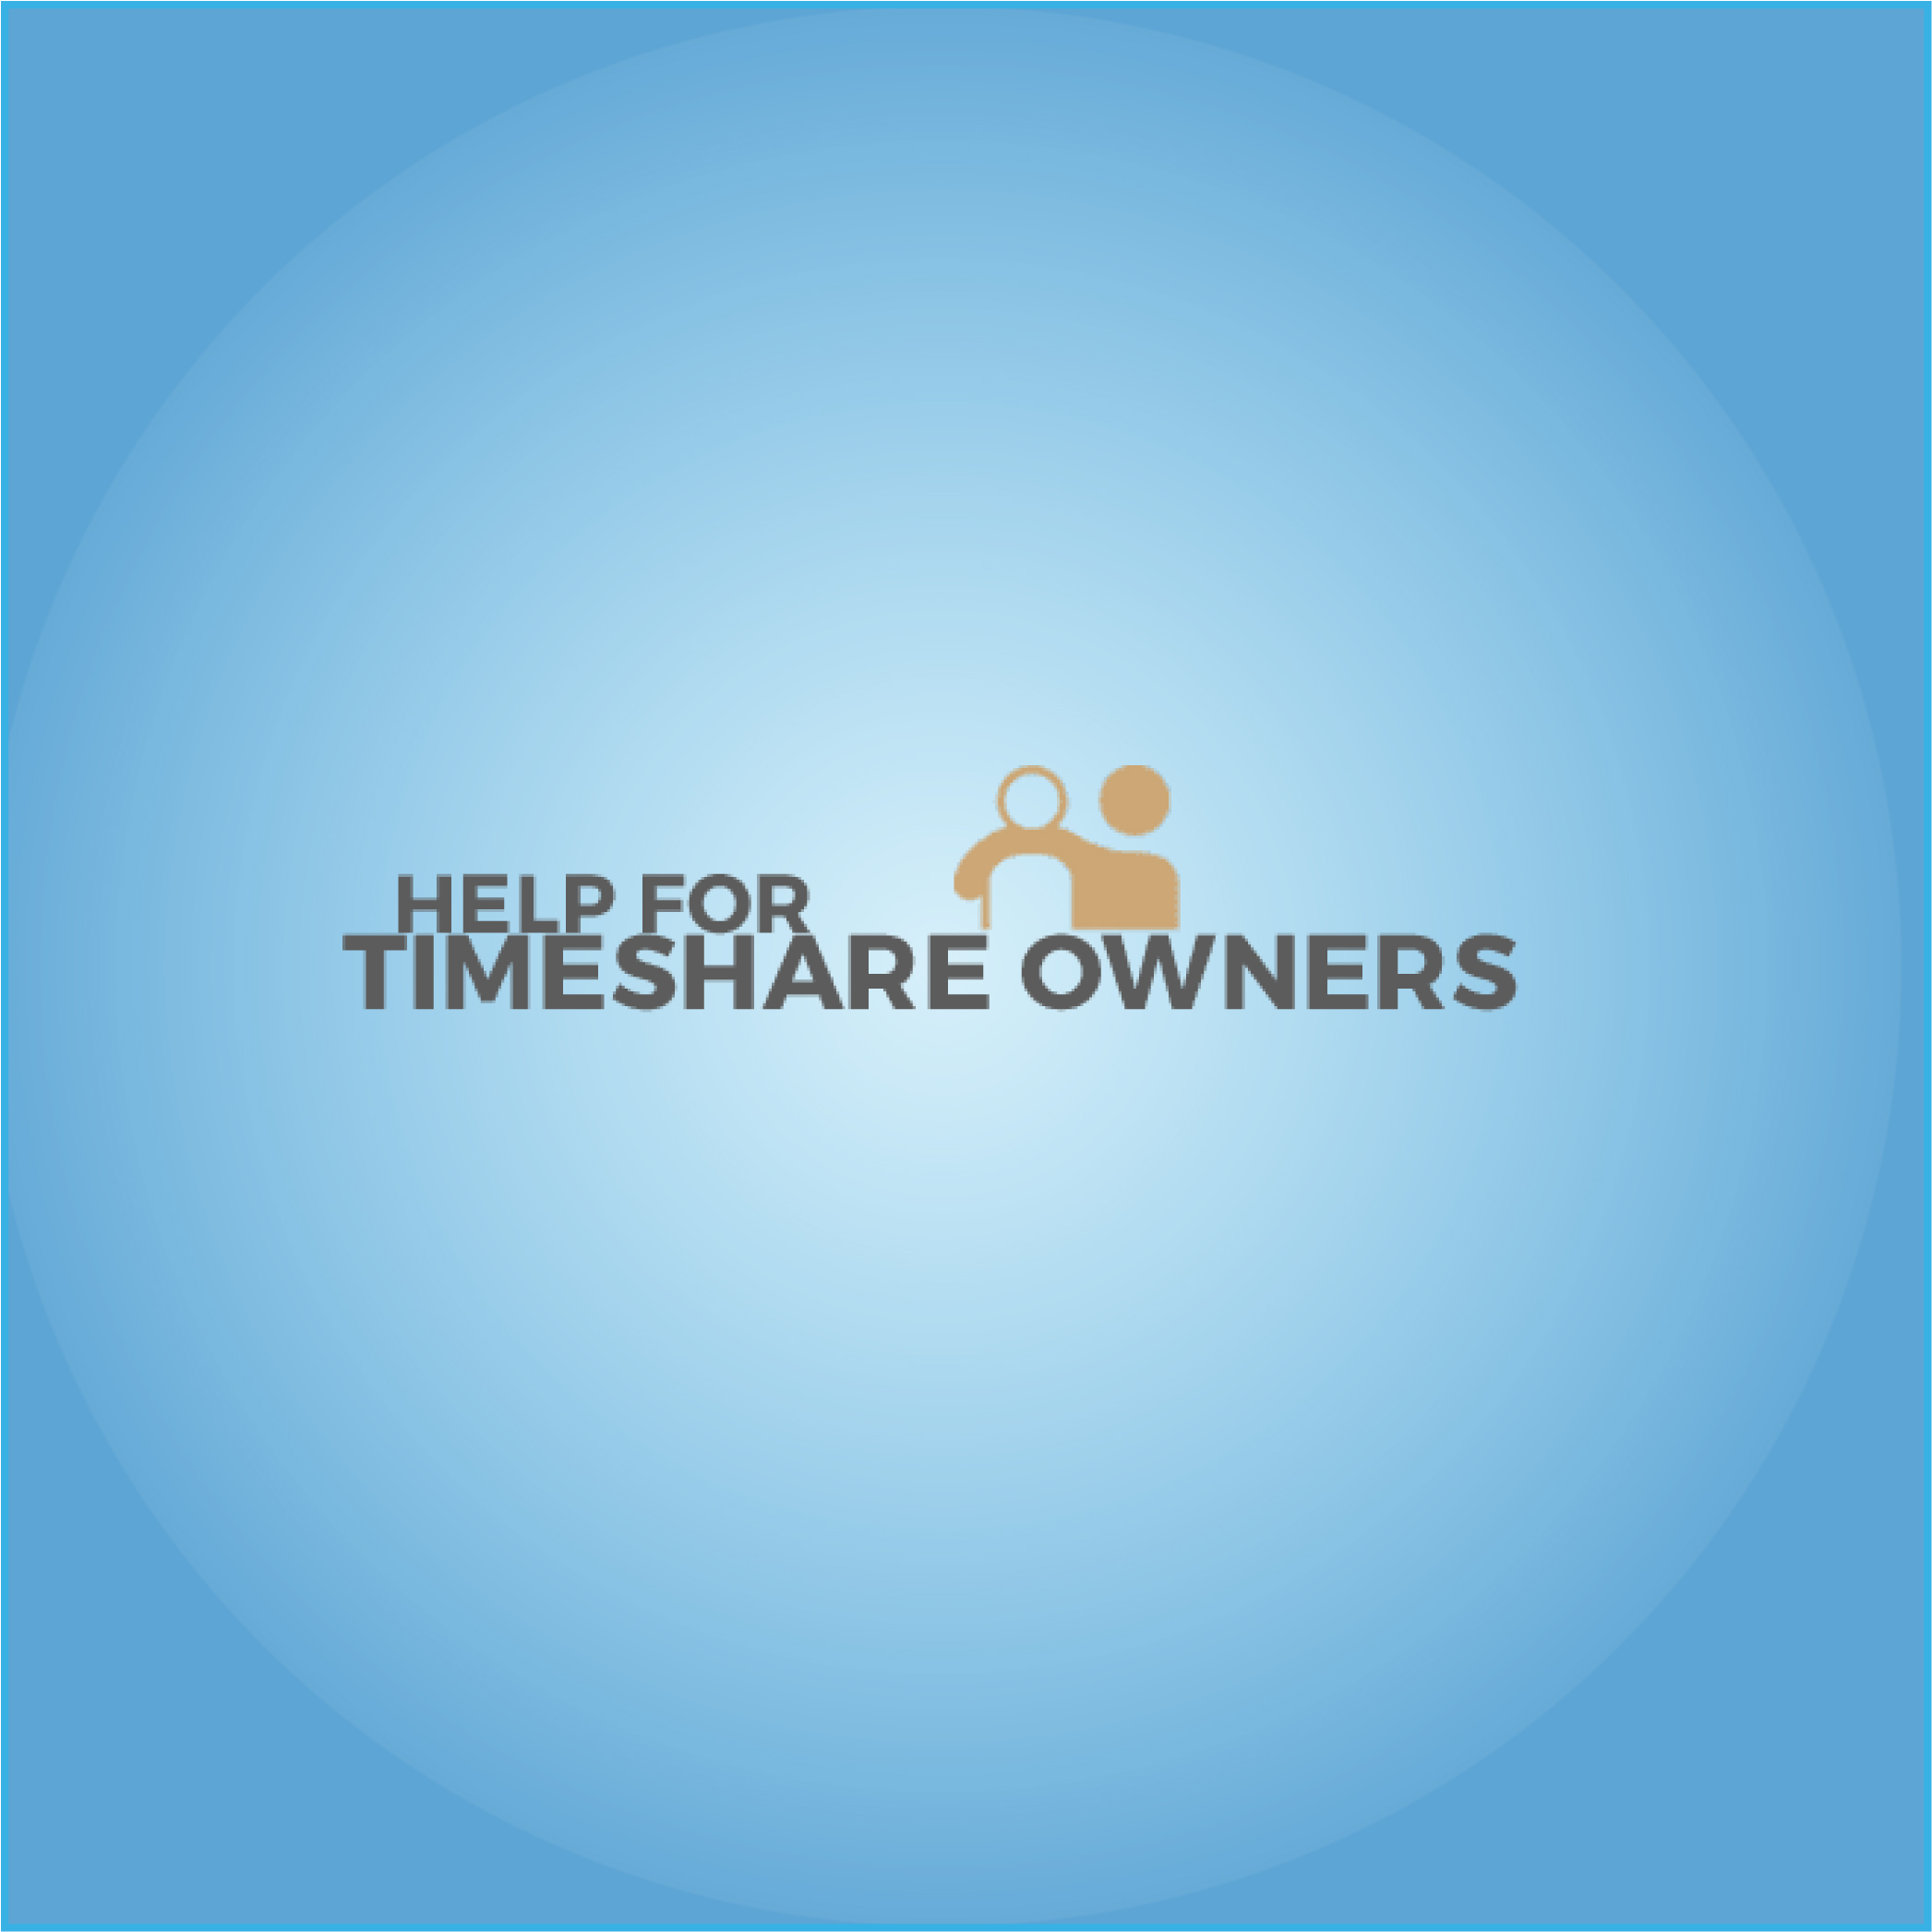 help 4 timeshare owners